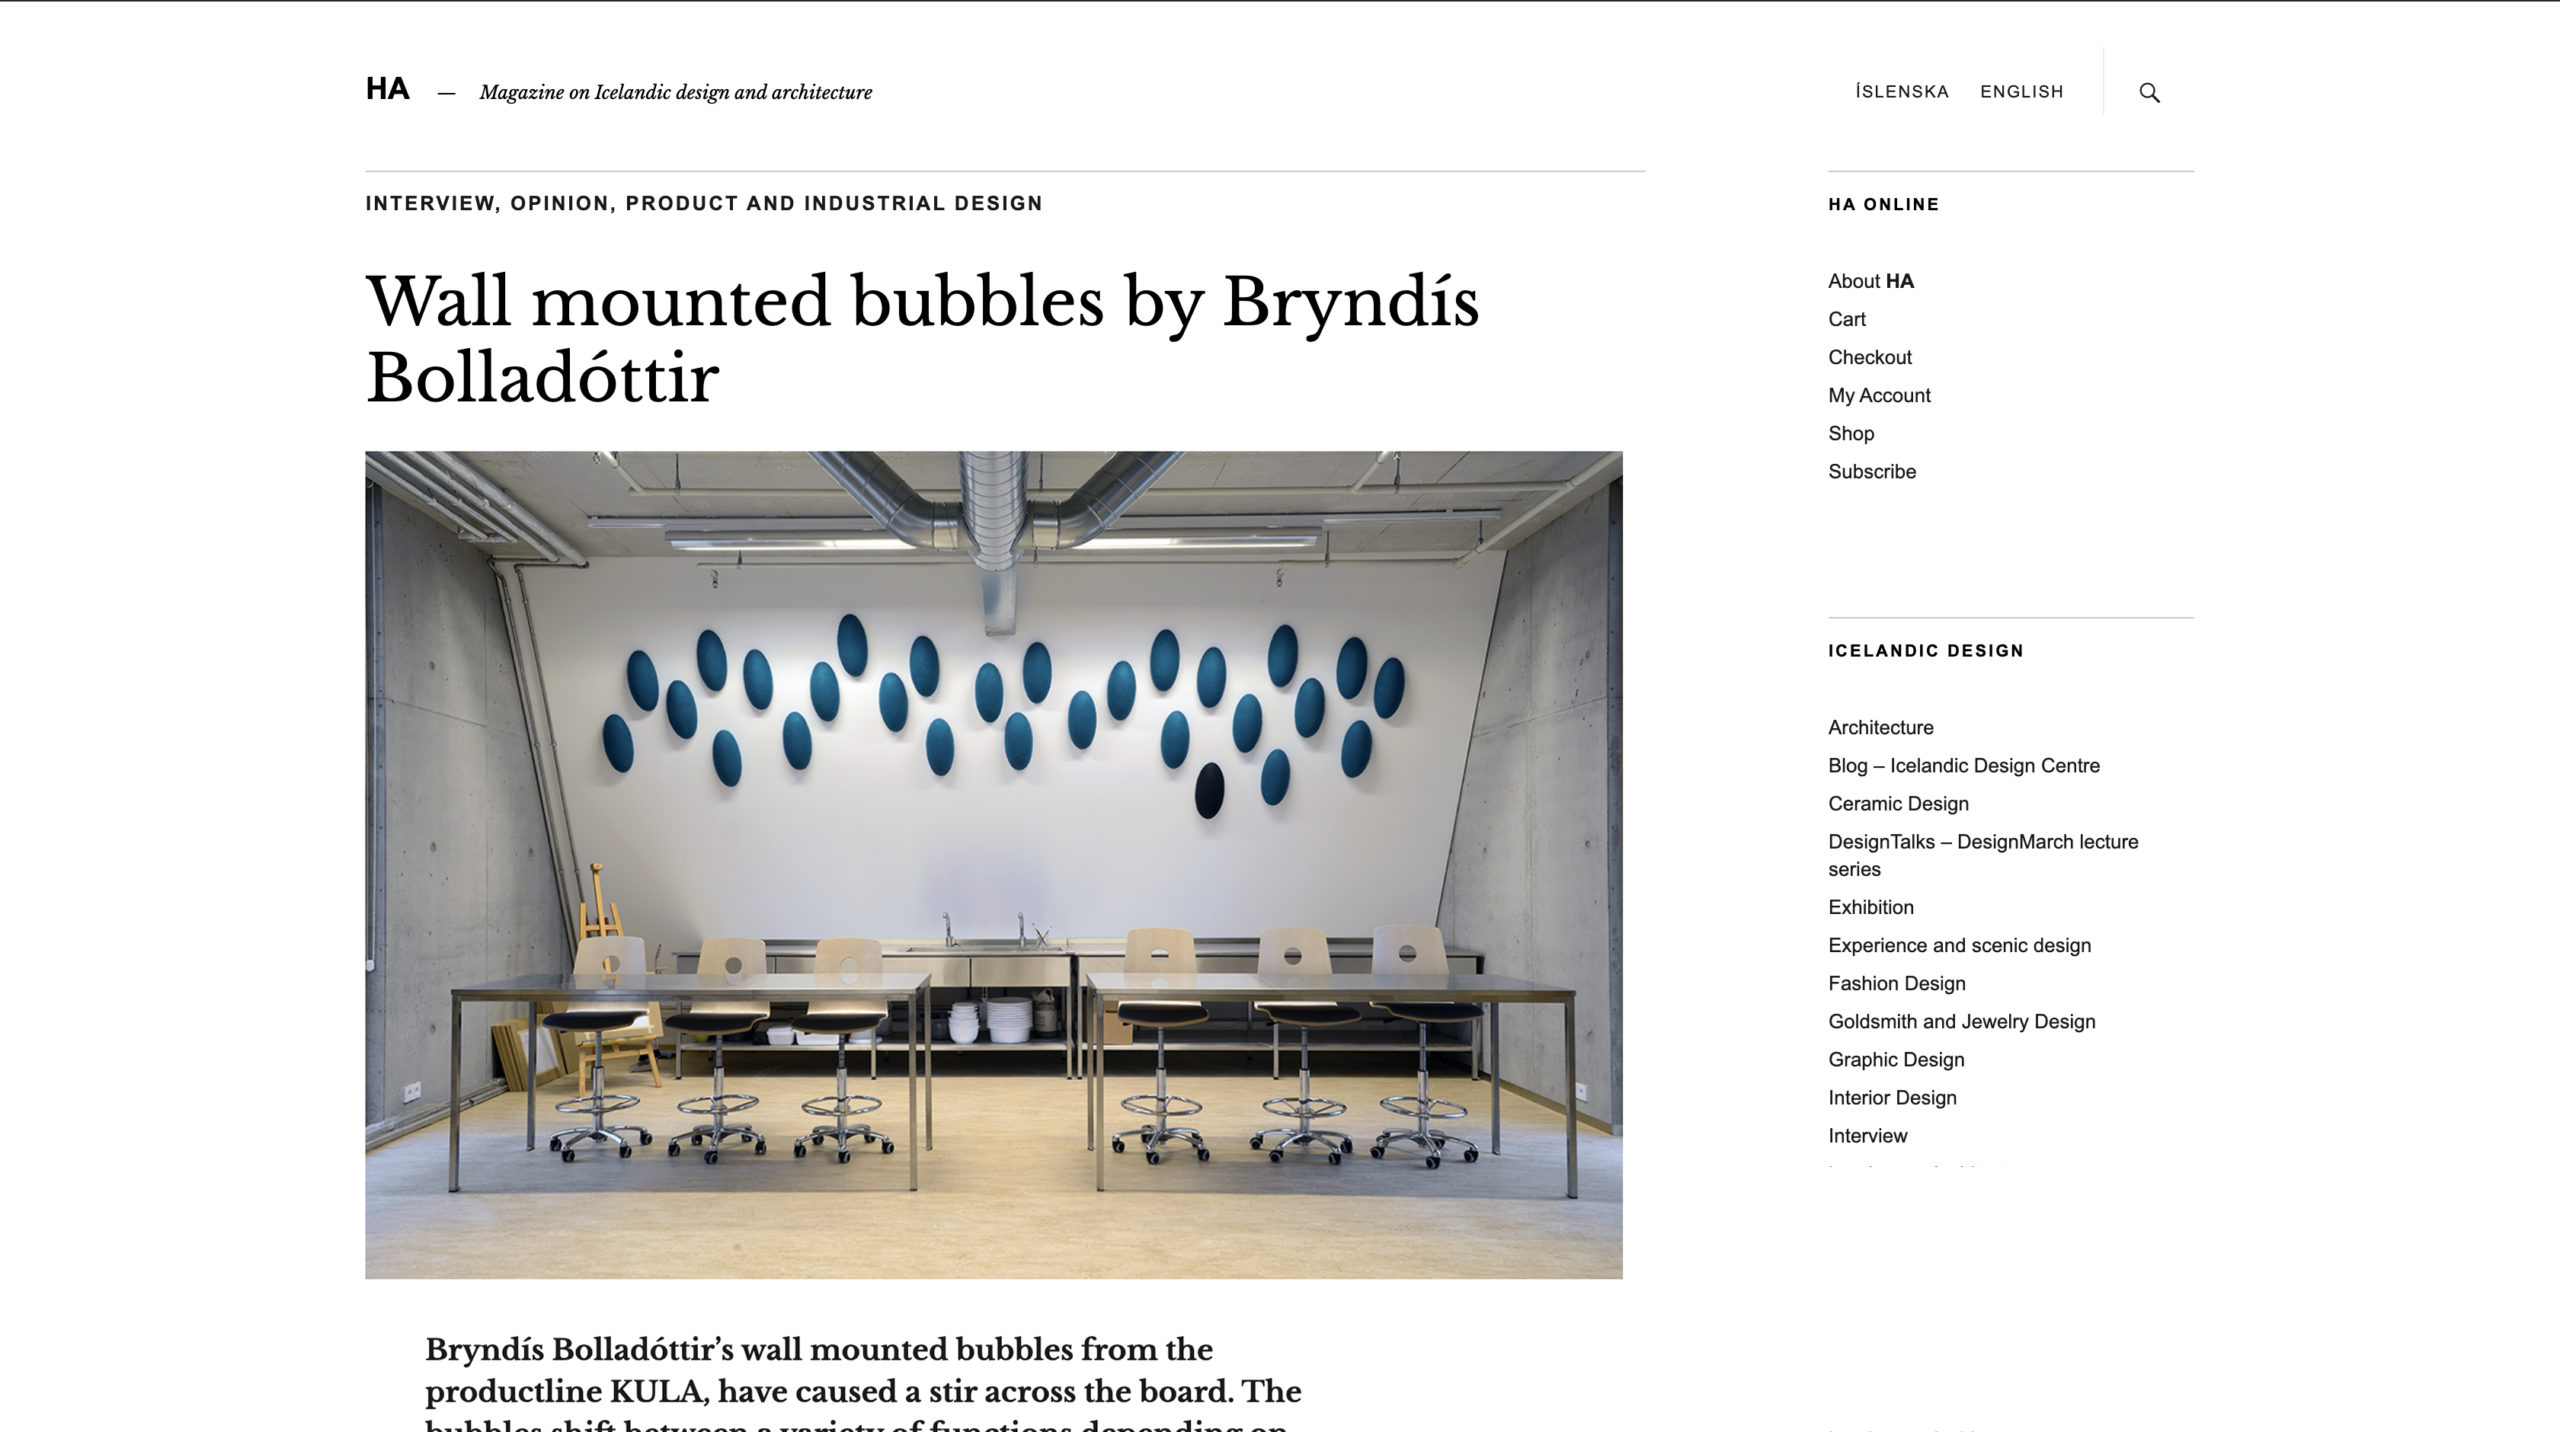 https://hadesignmag.is/2015/02/11/artistic-sound-solutions-bryndis-bolla/?lang=en